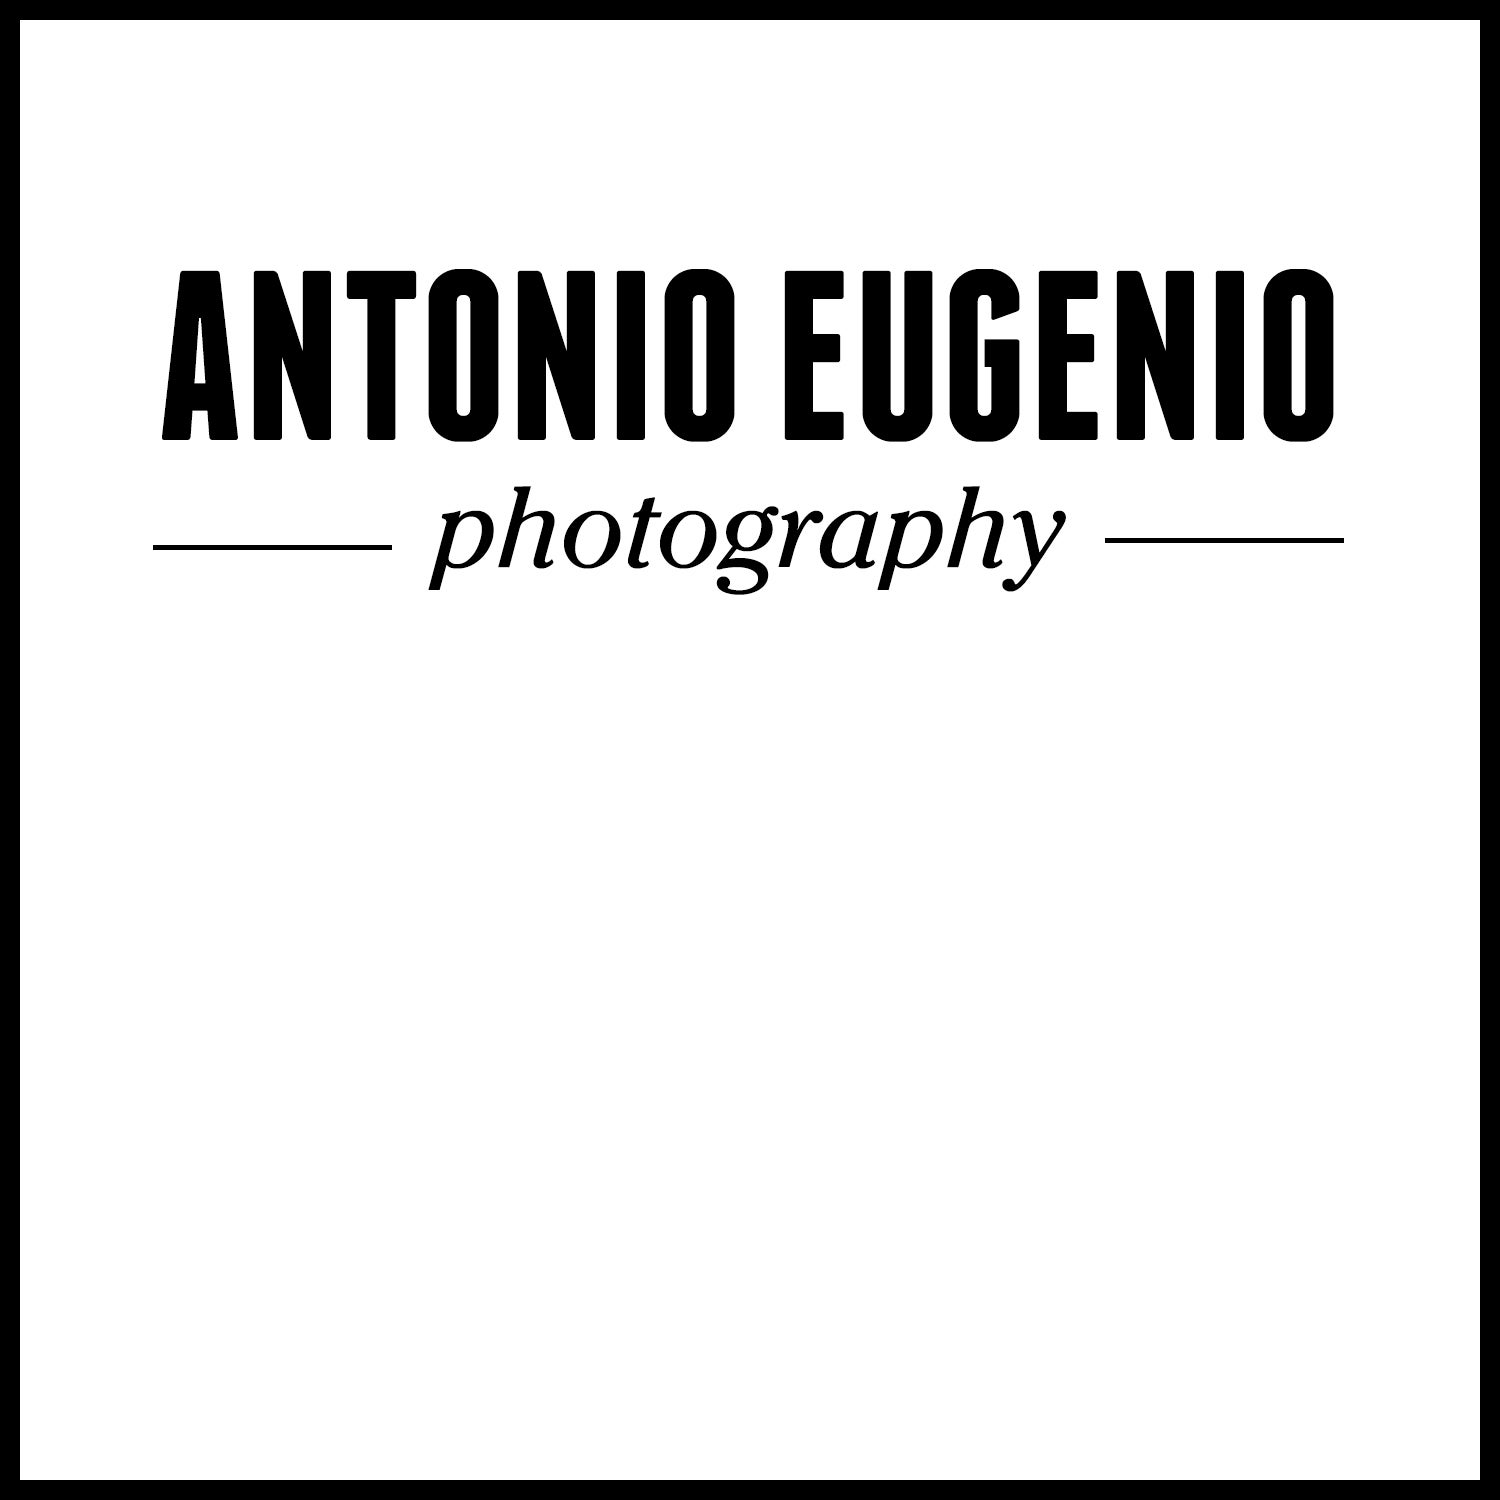 Antonio Eugenio Photography